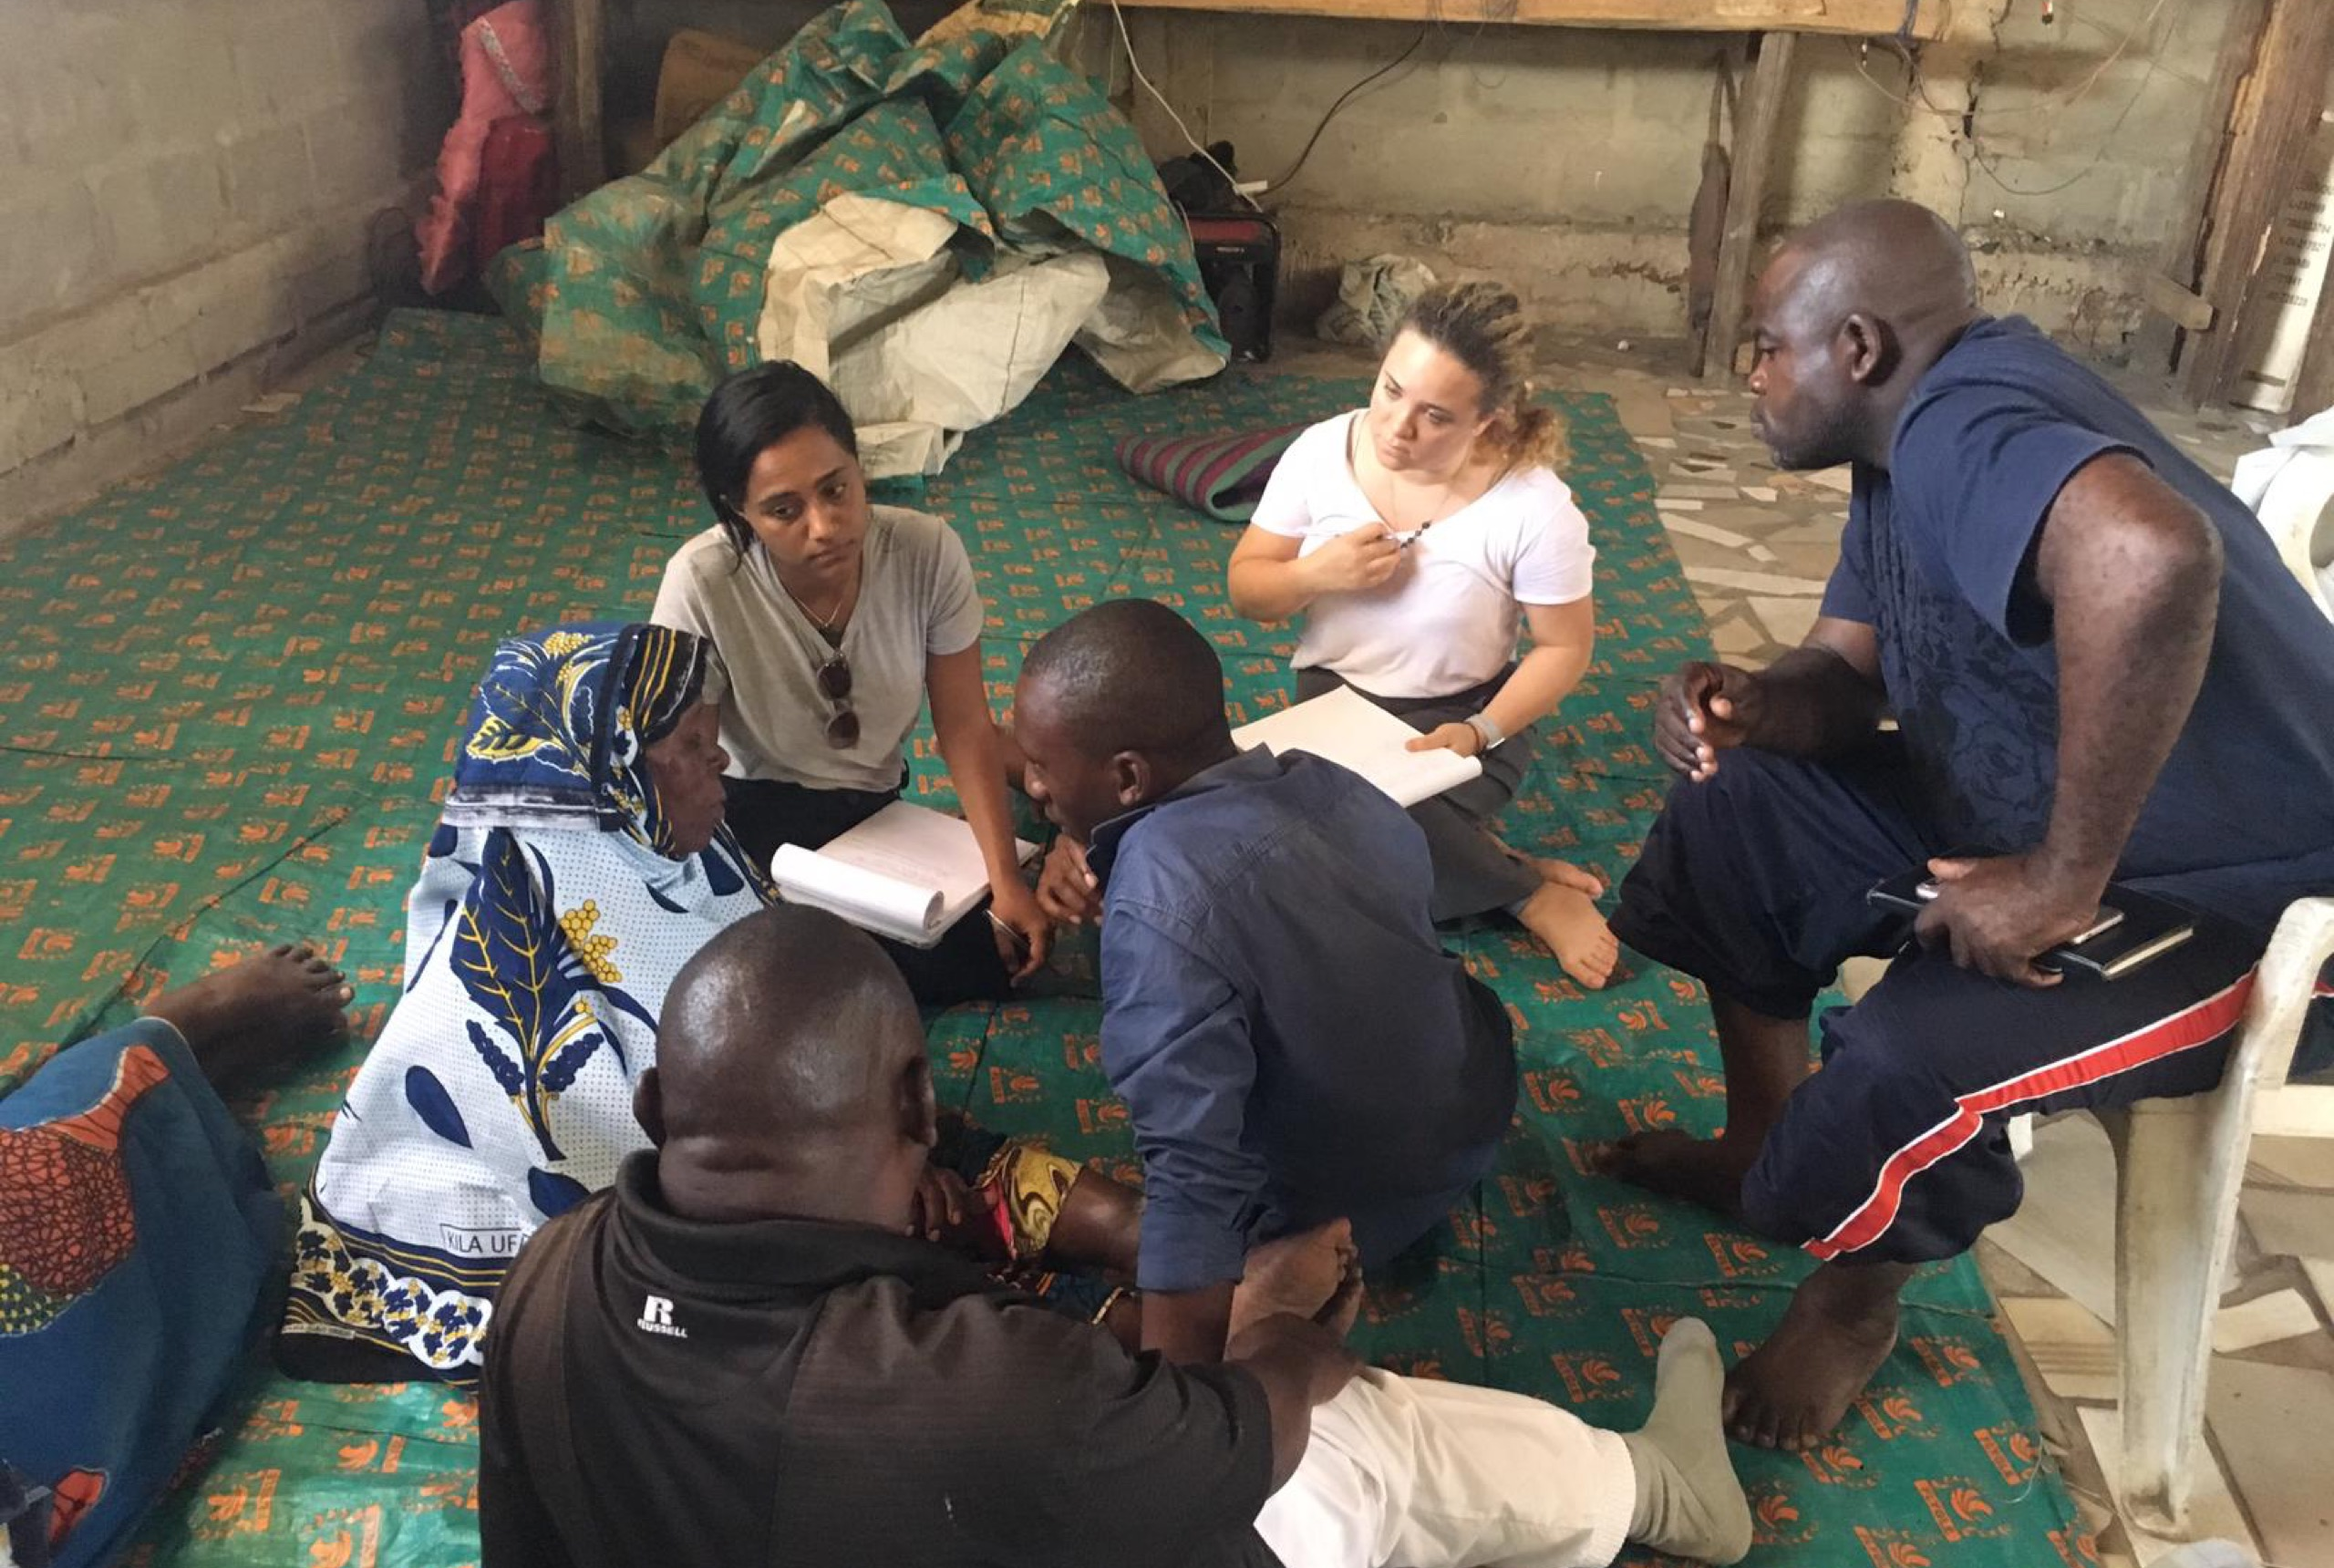 Three women and two men are sitting on the ground, and a man is sitting in a chair. Everyone is listening to a woman wearing a blue headscarf and sitting on the ground.